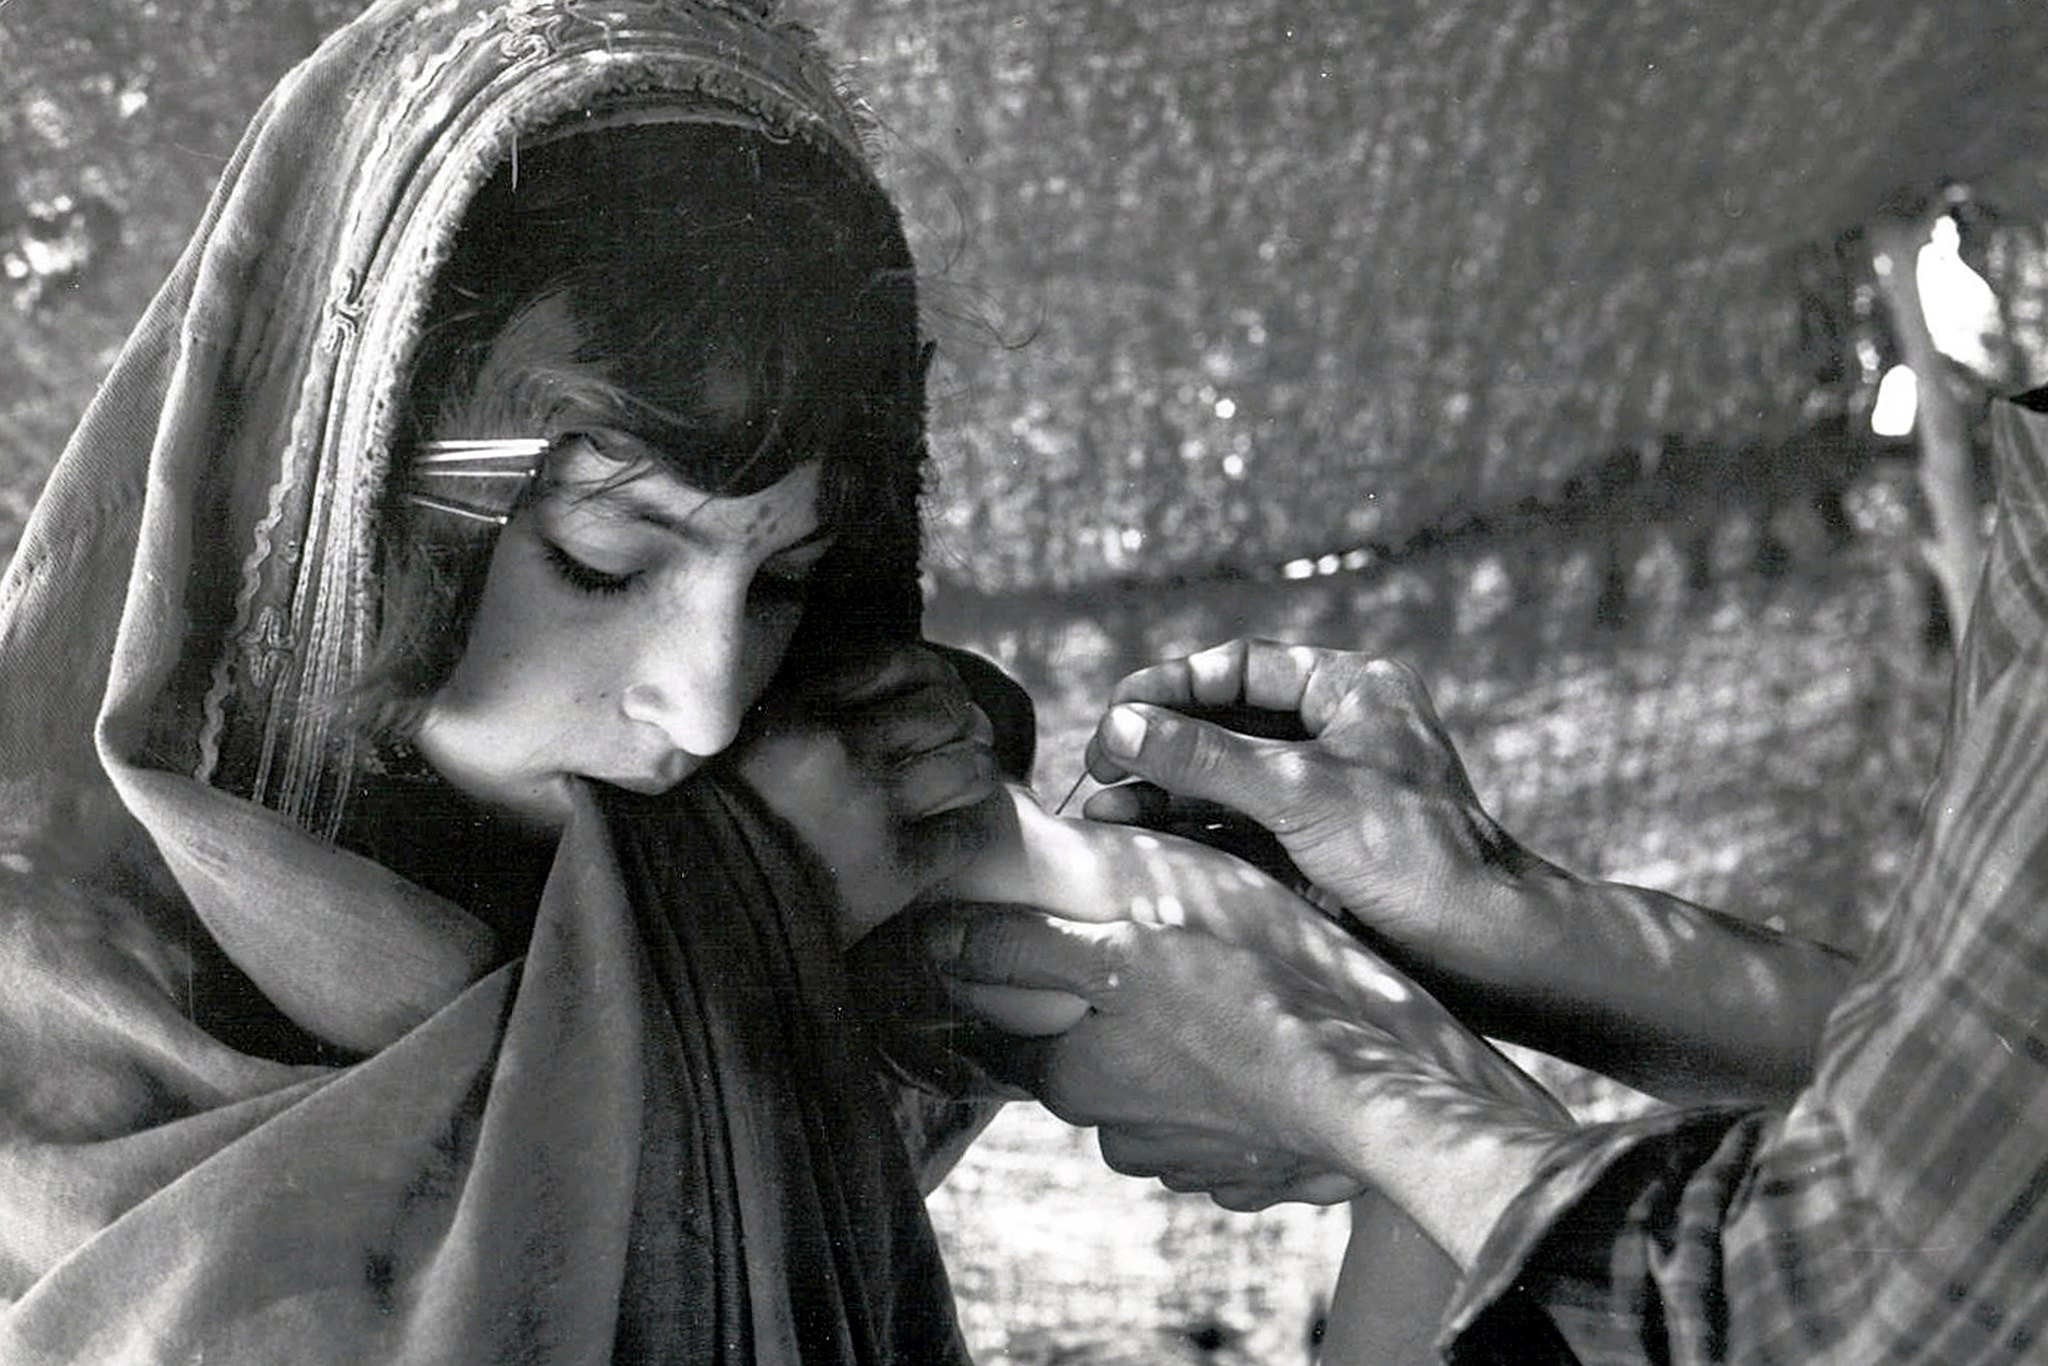 A girl in Afghanistan is vaccinated against smallpox in the 1970s.